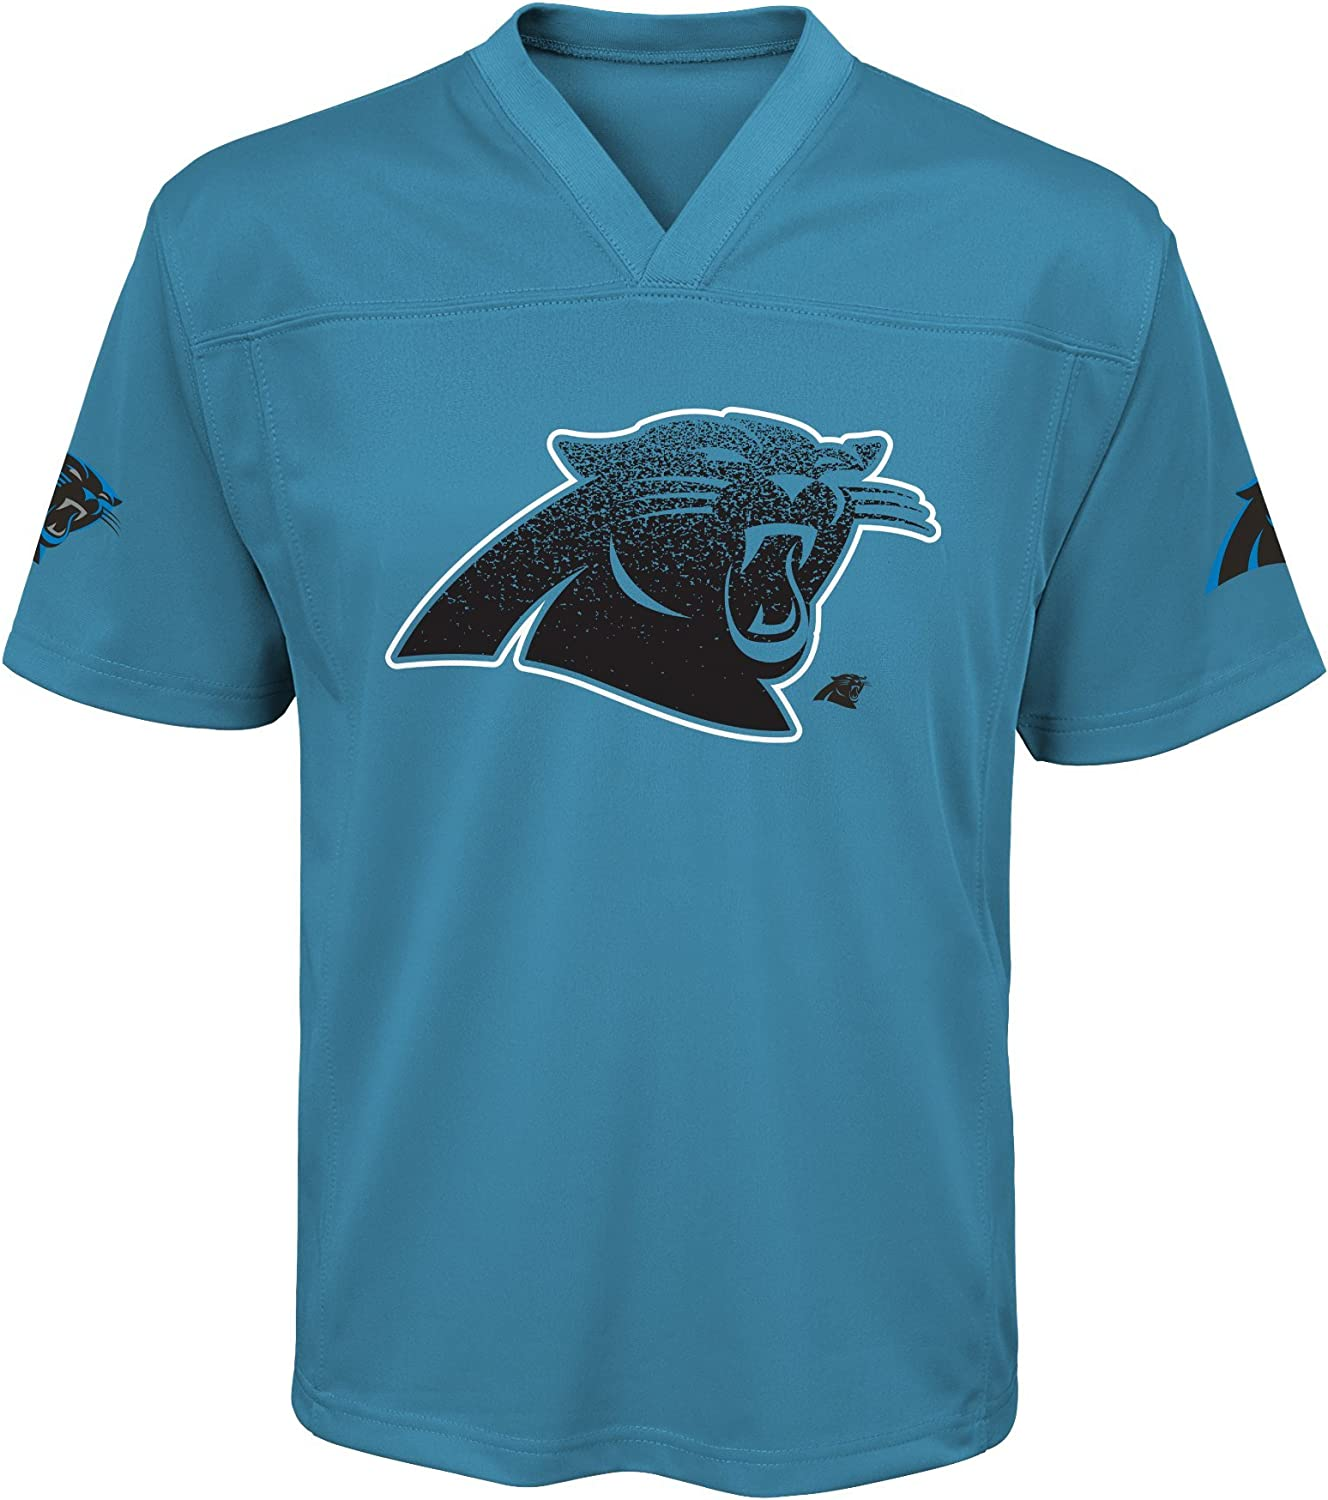 Outerstuff NFL Boys Color Rush Fashion Top